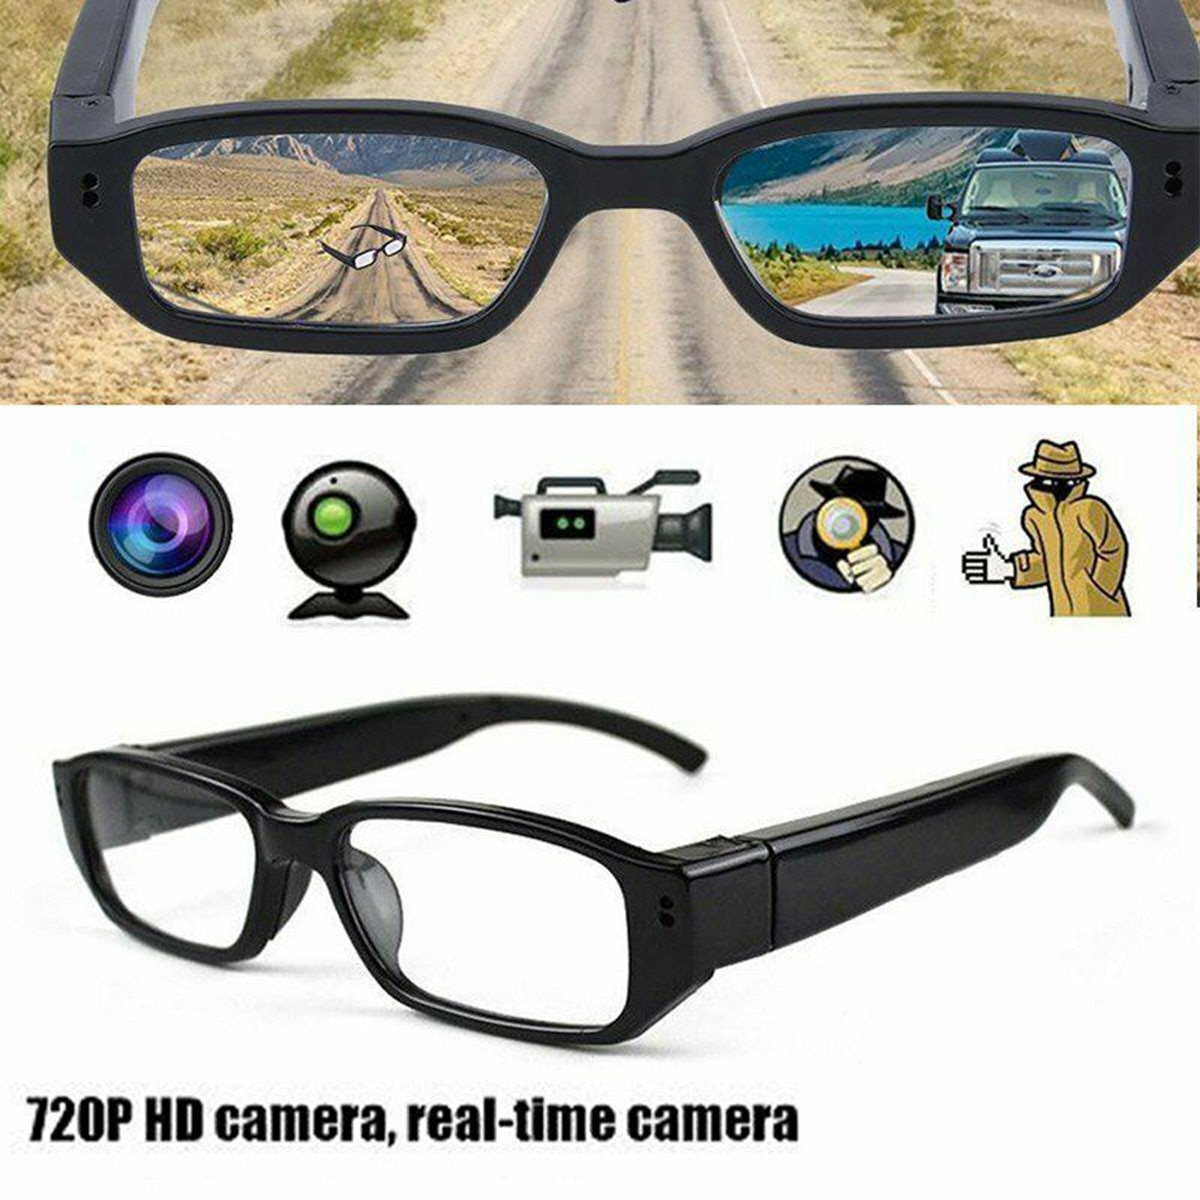 1080P HD Mini Camera Glasses Eyeglass DVR Video Recorder NVR Records Sports Action Video Cameras